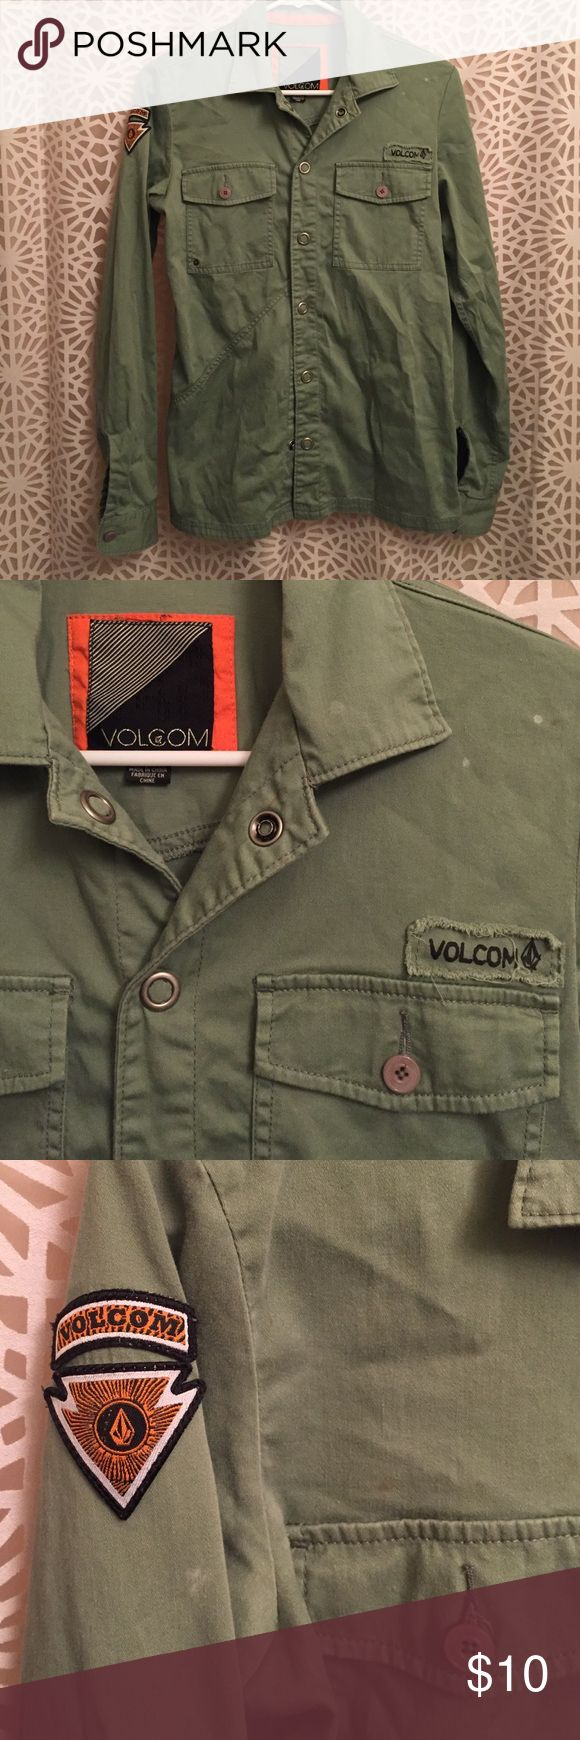 Green Army Style button up Volcom Shirt with snaps 100% cotton. Work once. There are a few small brown and white dots as seen in photos. The shirt came that way so I'm assuming they are supposed to be there. NO LOWBALL OFFERS. Volcom Tops Button Down Shirts